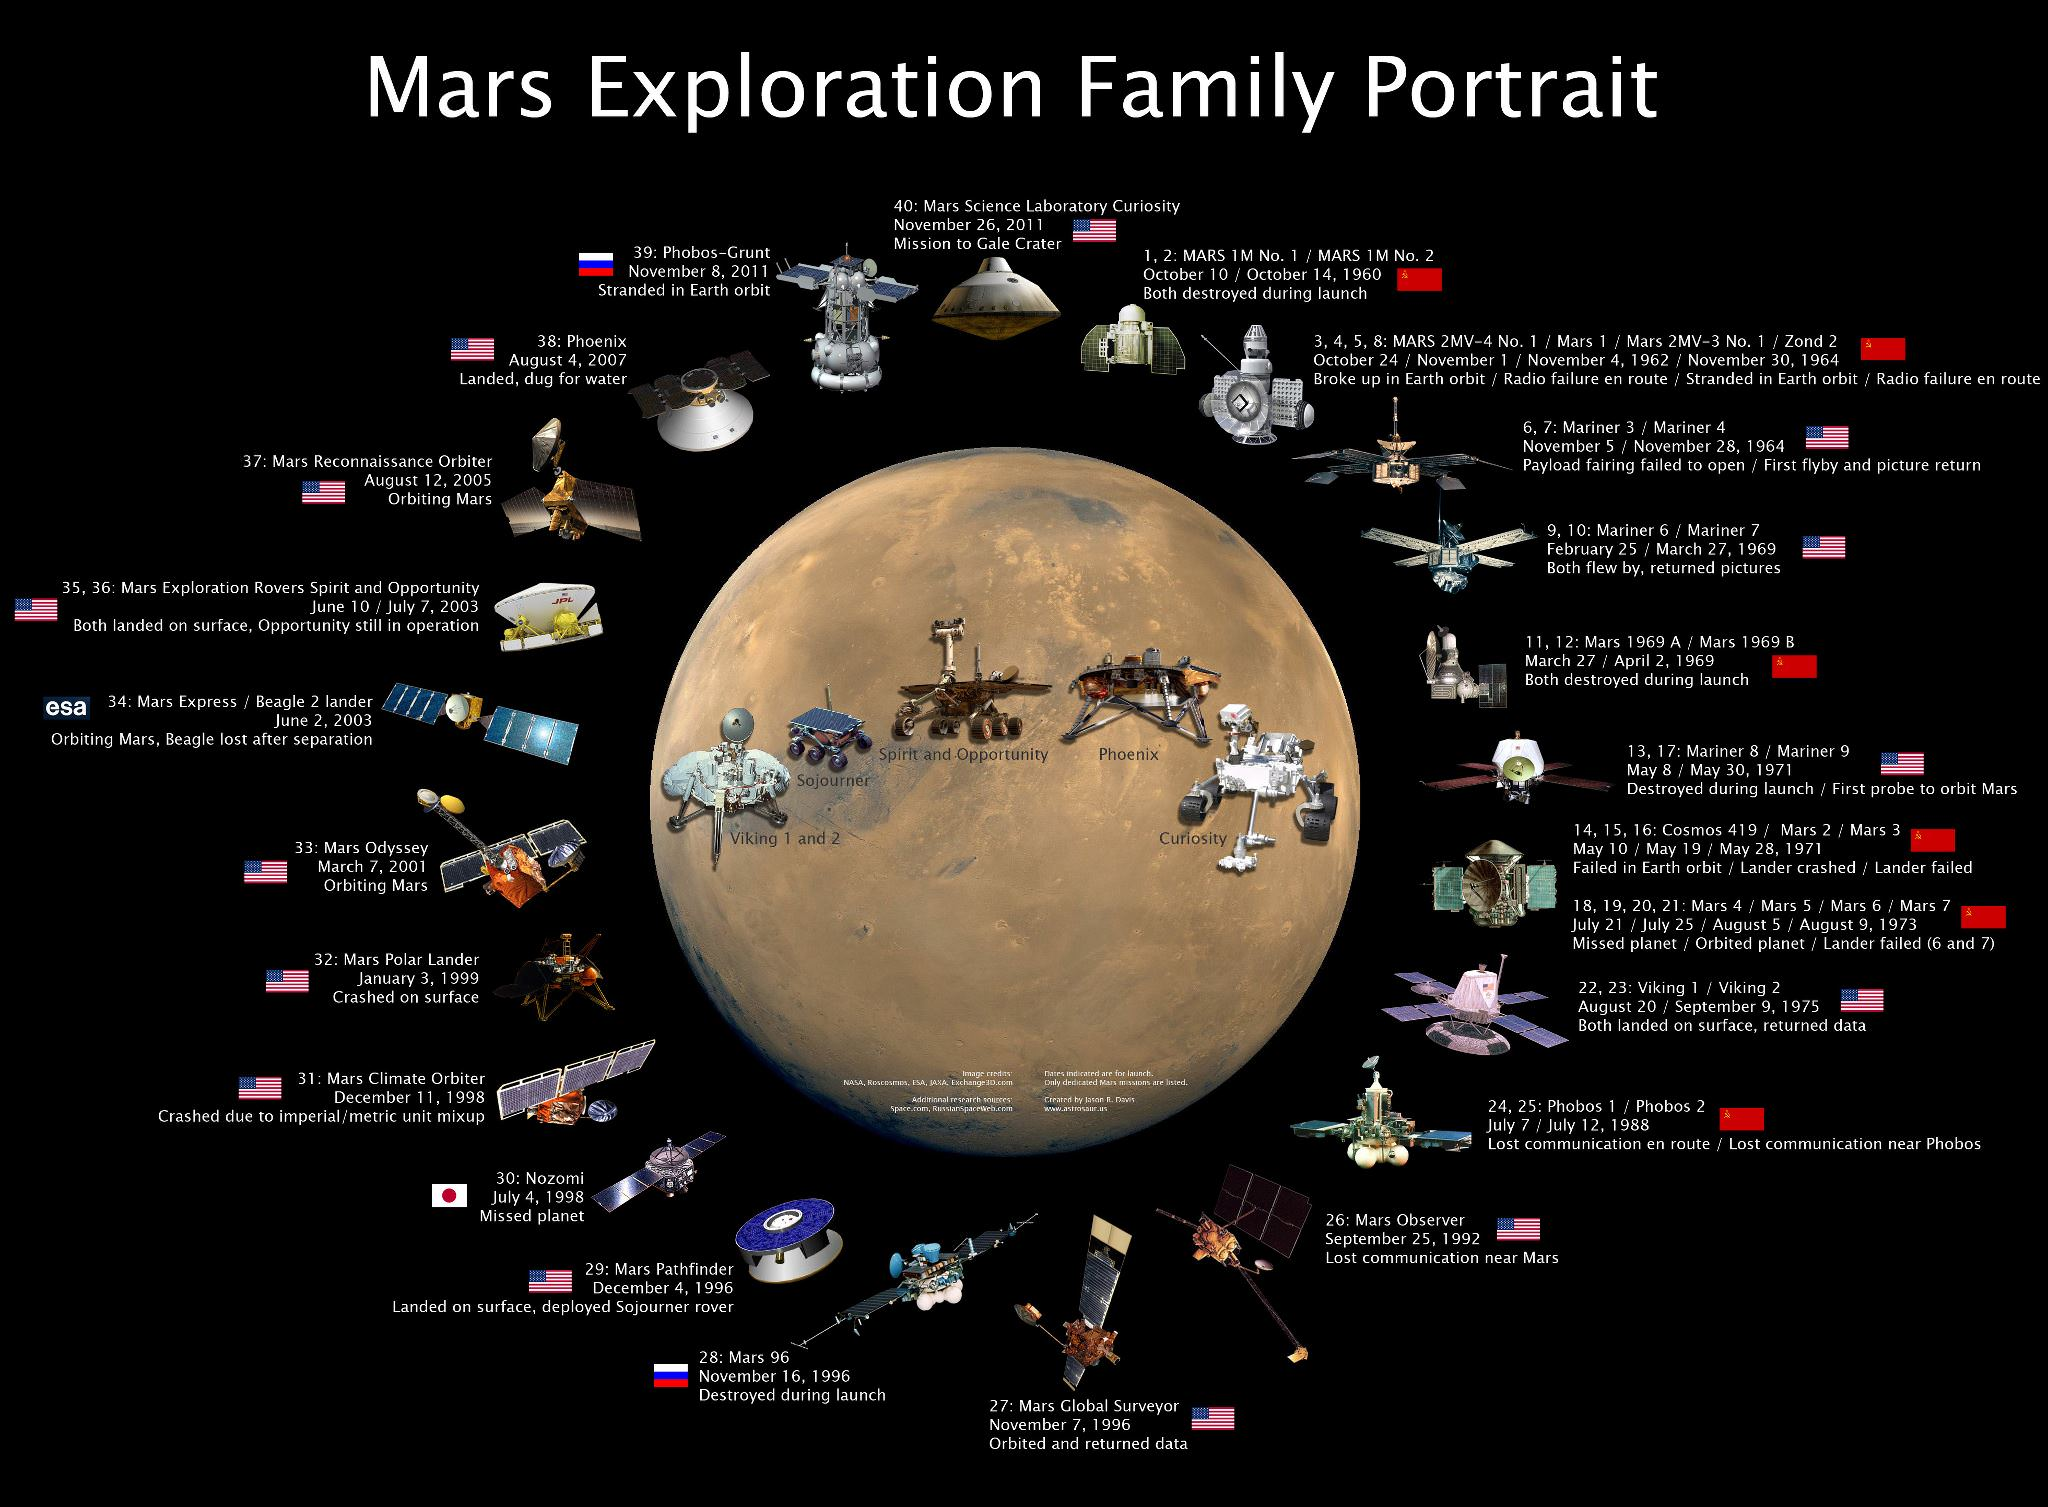 http://www.exploremars.org/wp-content/uploads/2013/03/Mars-Exploration-Family-Portrait.jpg